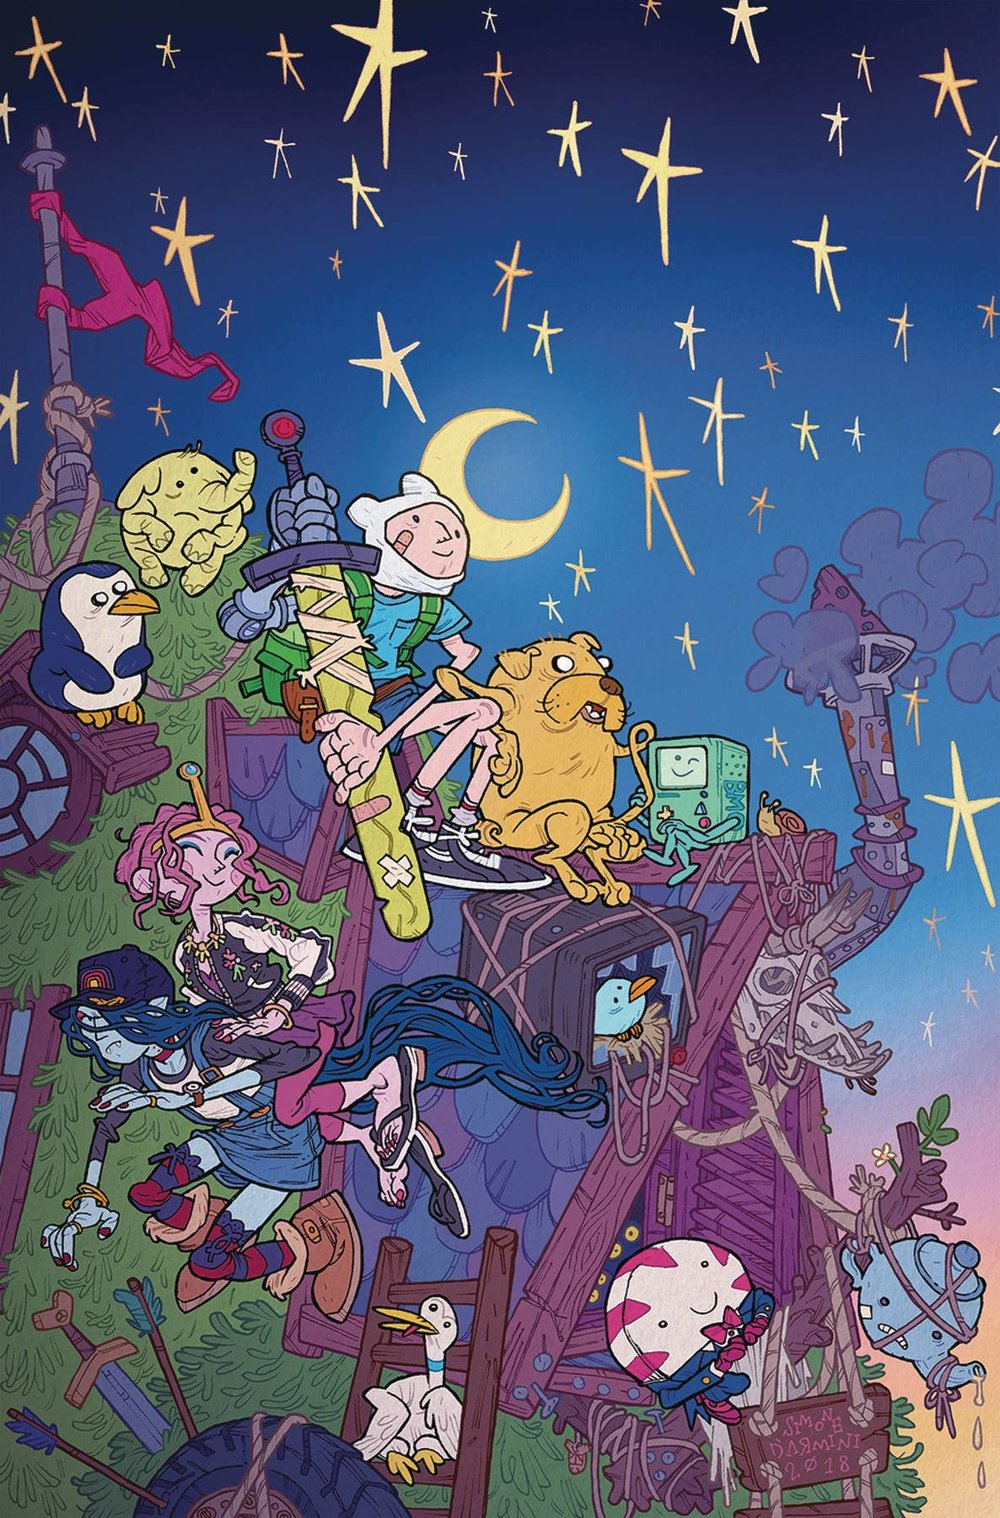 ADVENTURE TIME SEASON 11 3 10 COPY DARMINI INCV.jpg